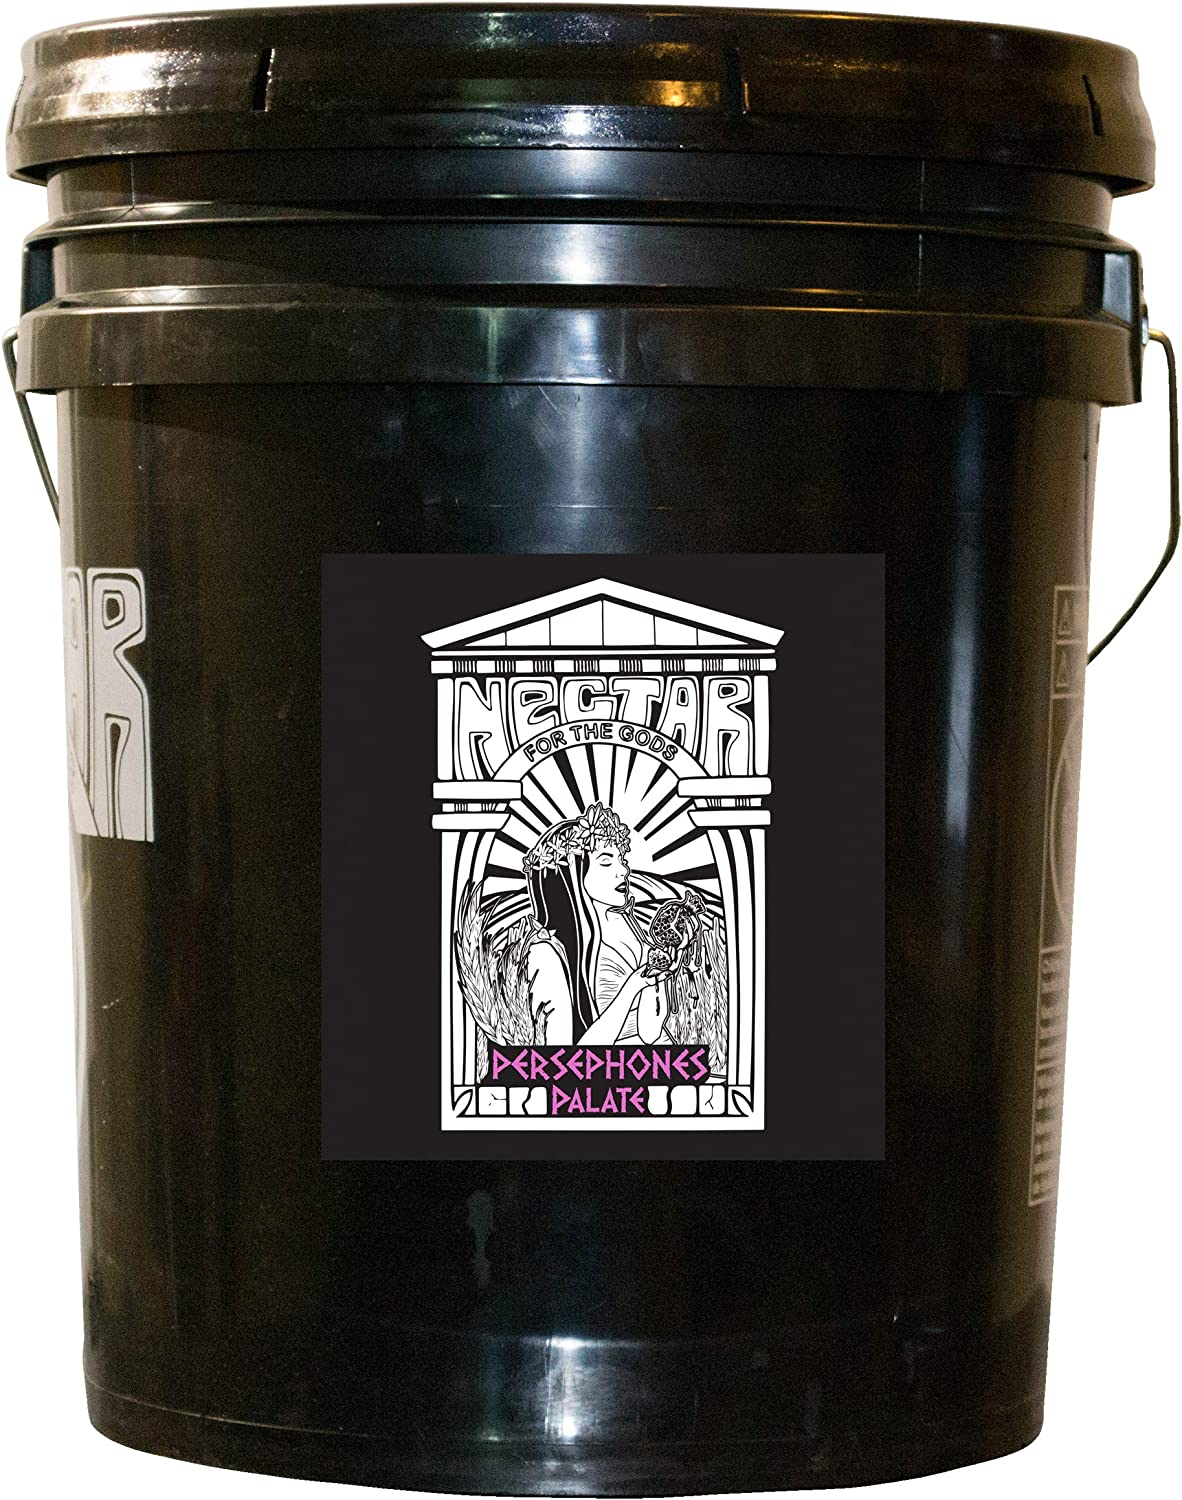 Nectar for the Gods 746326 Persephone's Palate, 5 Gallon, Black